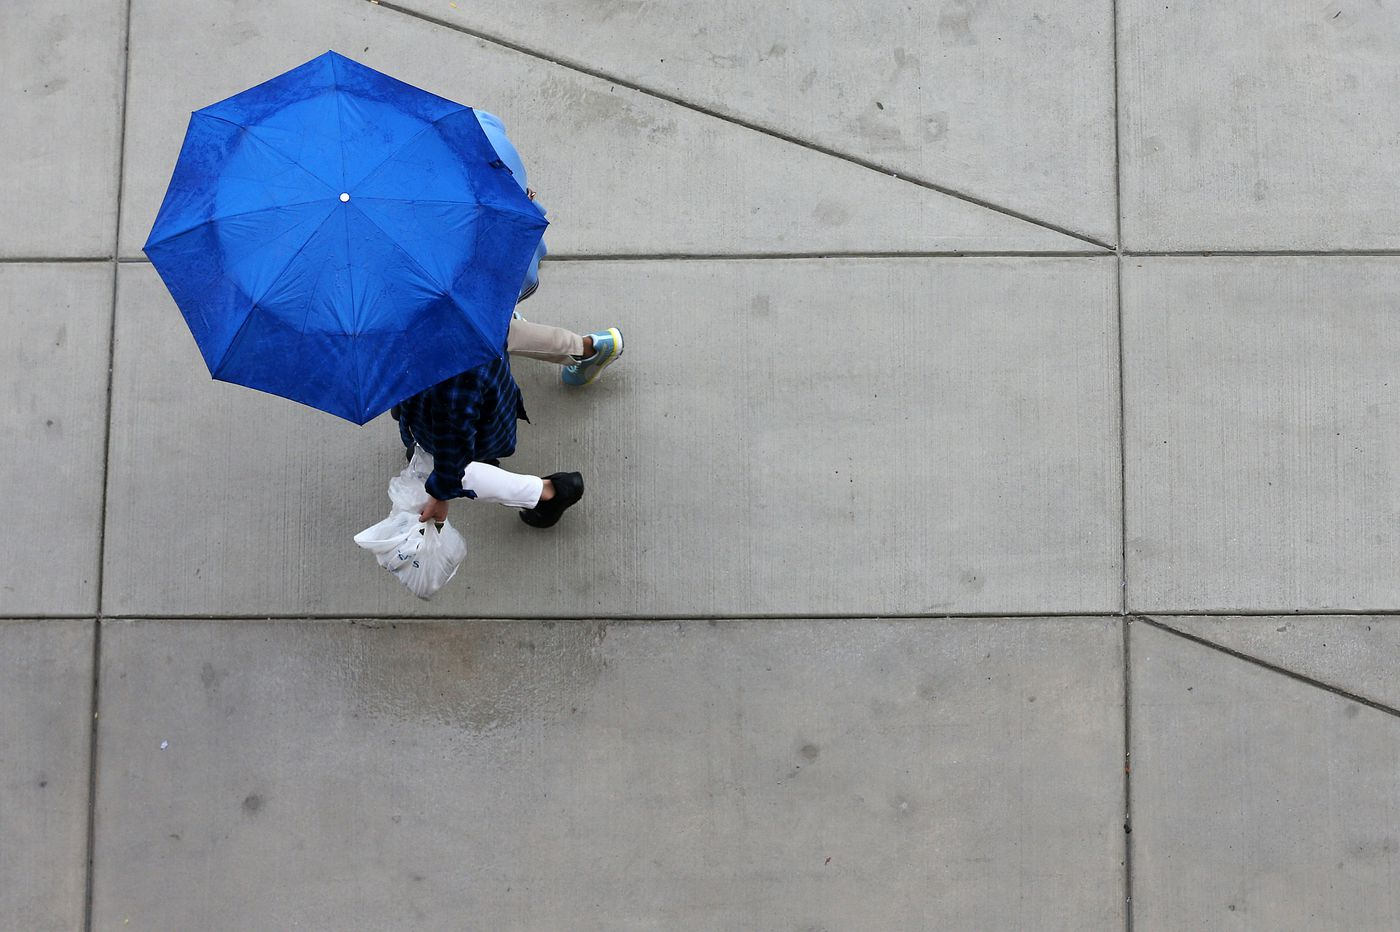 A wet weather warning for tonight, Sunday